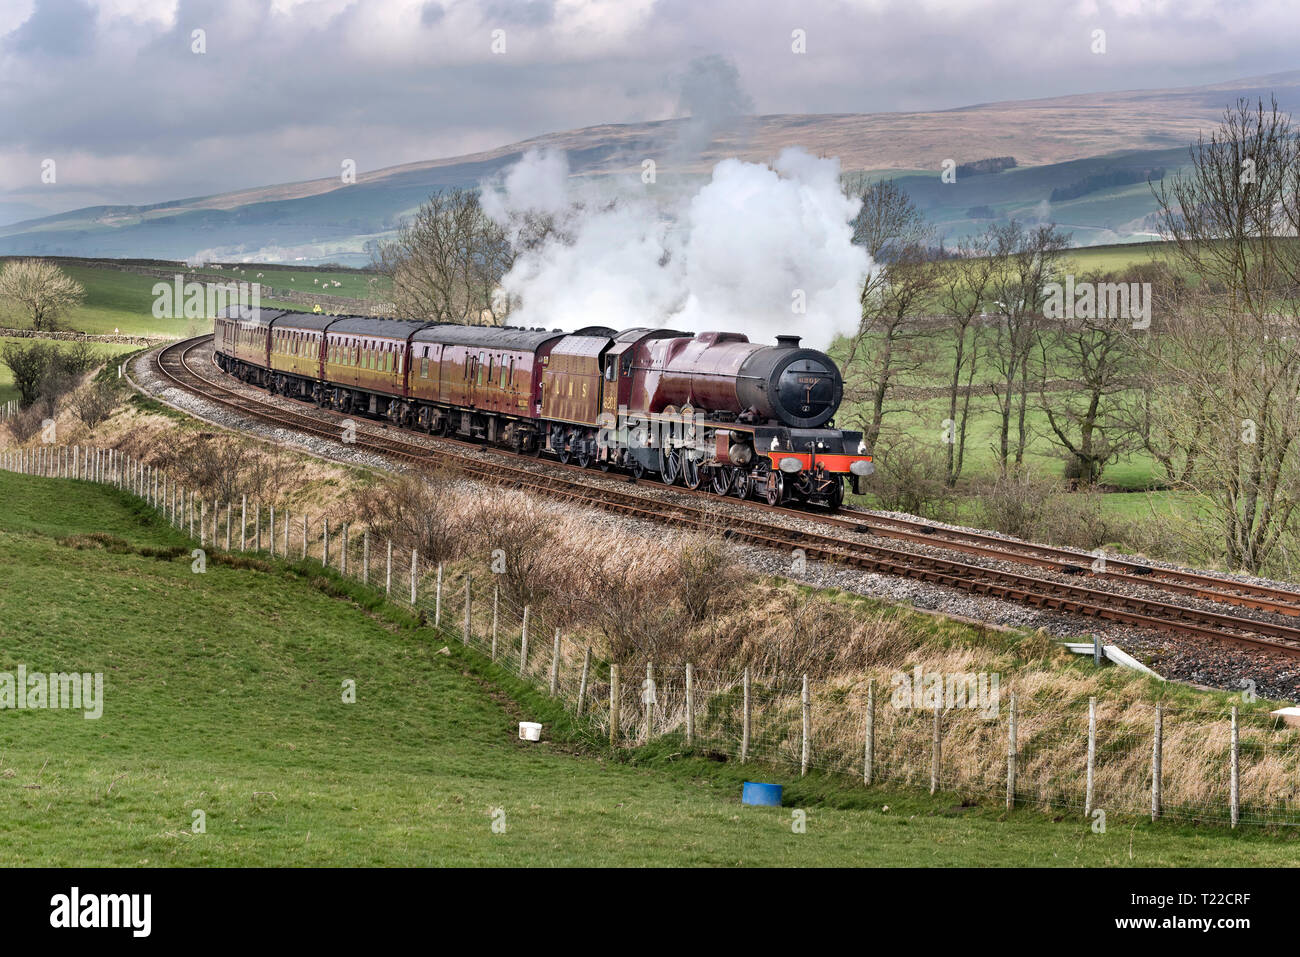 Princess Elizabeth a 1930s express steam locomotive on a test run, following restoration work, seen here on the mainline near Clapham, North Yorkshire - Stock Image